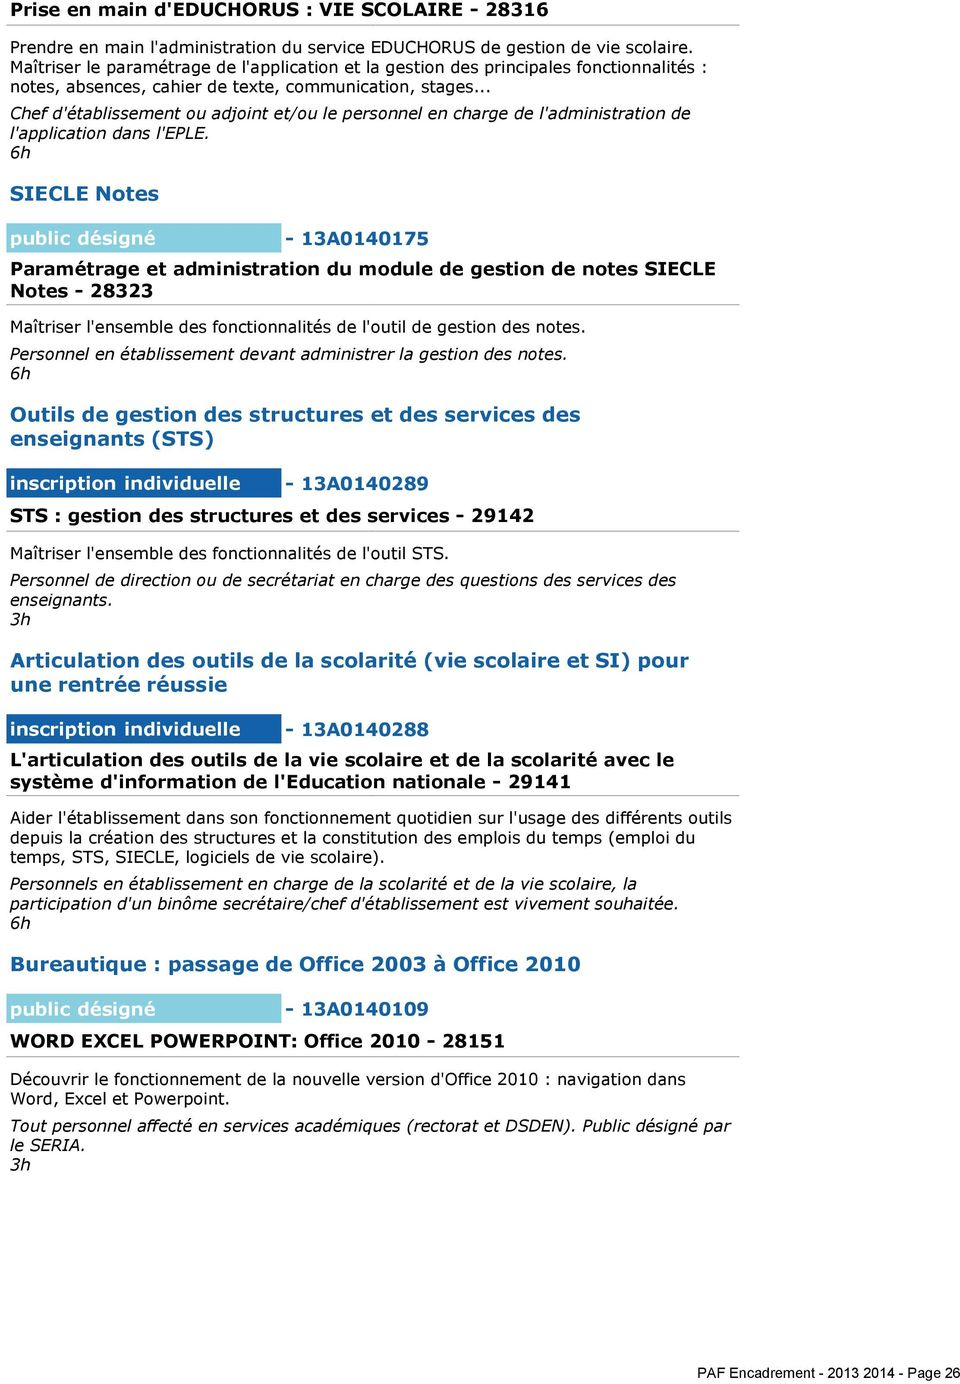 .. Chef d'établissement ou adjoint et/ou le personnel en charge de l'administration de l'application dans l'eple.